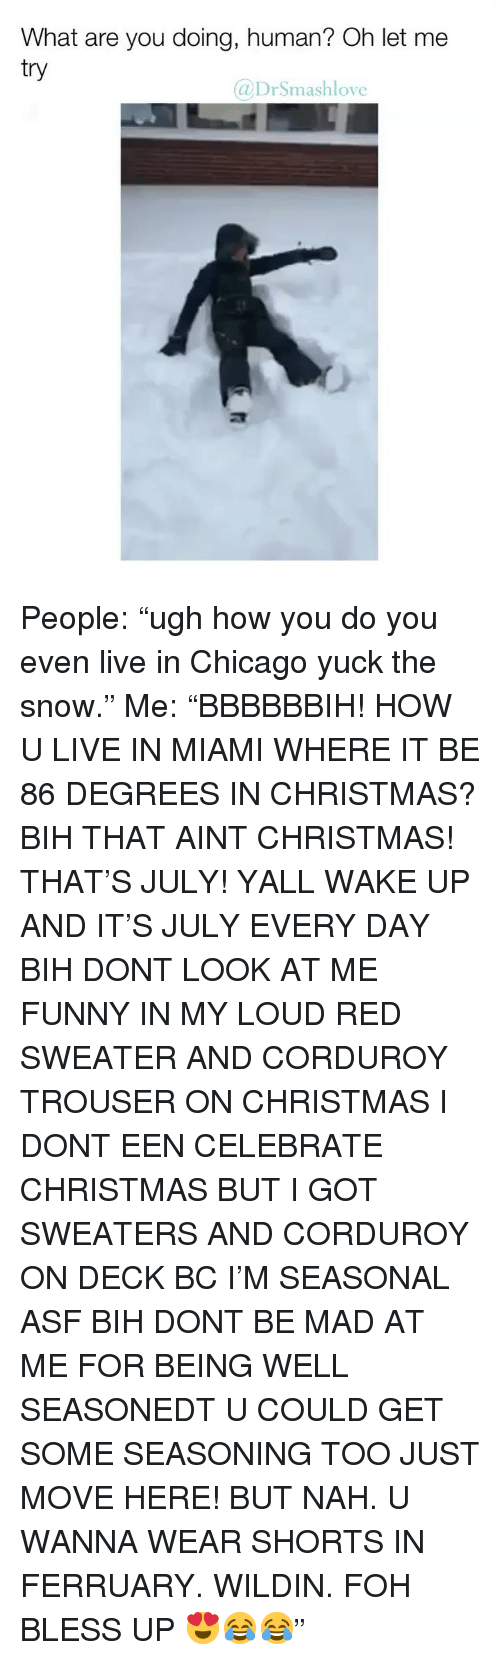 """Bless Up, Chicago, and Christmas: What are you doing, human? Oh let me  try  @DrSmashlove People: """"ugh how you do you even live in Chicago yuck the snow."""" Me: """"BBBBBBIH! HOW U LIVE IN MIAMI WHERE IT BE 86 DEGREES IN CHRISTMAS? BIH THAT AINT CHRISTMAS! THAT'S JULY! YALL WAKE UP AND IT'S JULY EVERY DAY BIH DONT LOOK AT ME FUNNY IN MY LOUD RED SWEATER AND CORDUROY TROUSER ON CHRISTMAS I DONT EEN CELEBRATE CHRISTMAS BUT I GOT SWEATERS AND CORDUROY ON DECK BC I'M SEASONAL ASF BIH DONT BE MAD AT ME FOR BEING WELL SEASONEDT U COULD GET SOME SEASONING TOO JUST MOVE HERE! BUT NAH. U WANNA WEAR SHORTS IN FERRUARY. WILDIN. FOH BLESS UP 😍😂😂"""""""